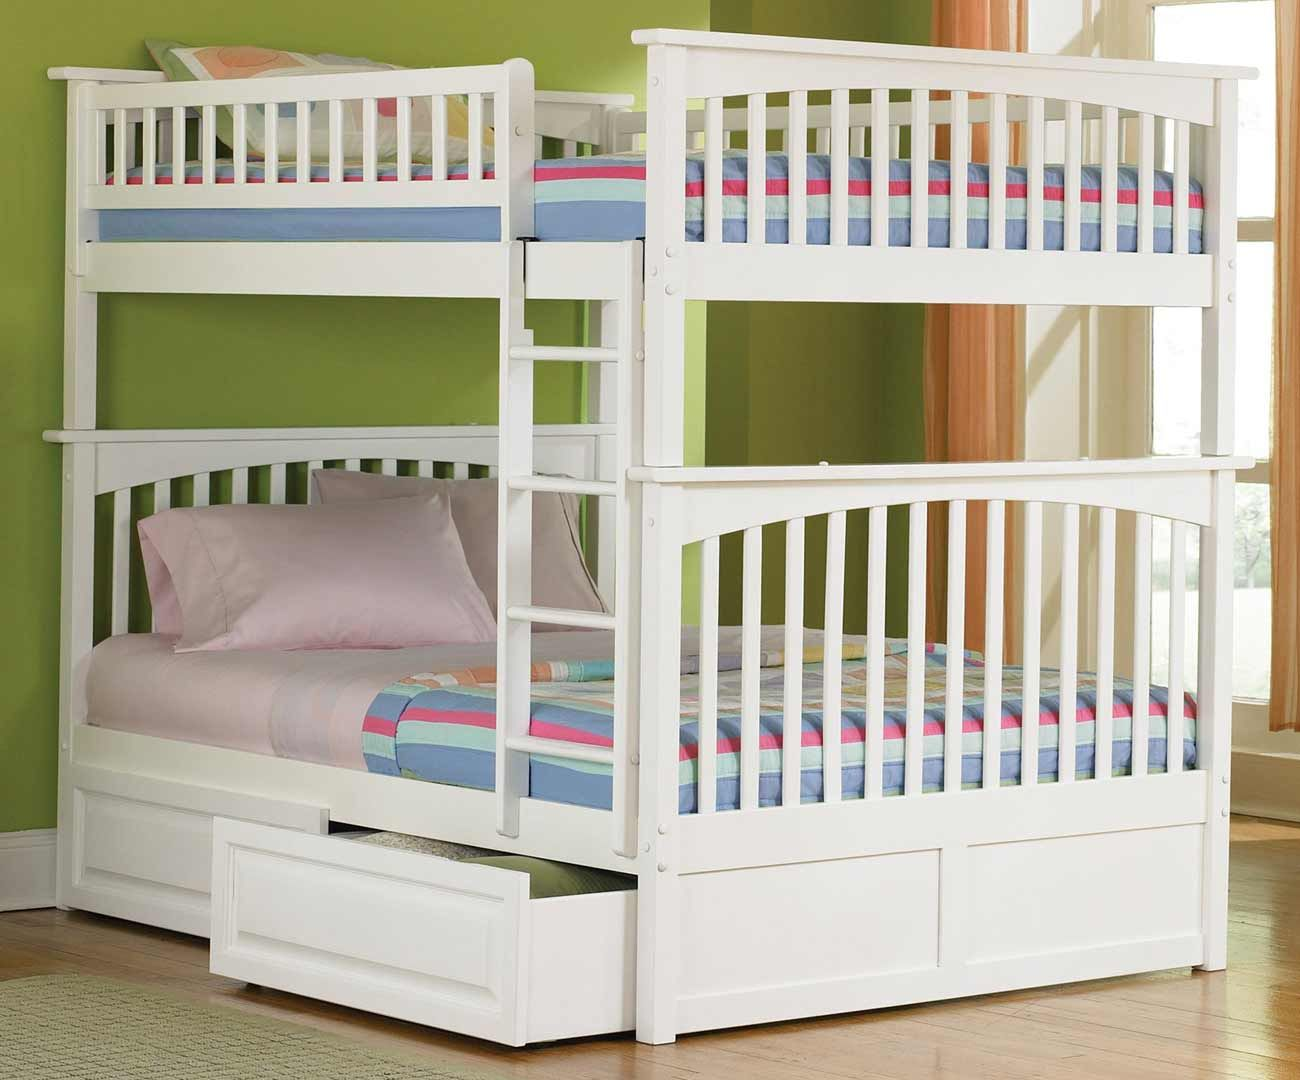 Bedroom ideas for girls with bunk beds - Teen Room Ideas For Girls With Bunkbeds Columbia Full Size White Bunk Beds For Teens